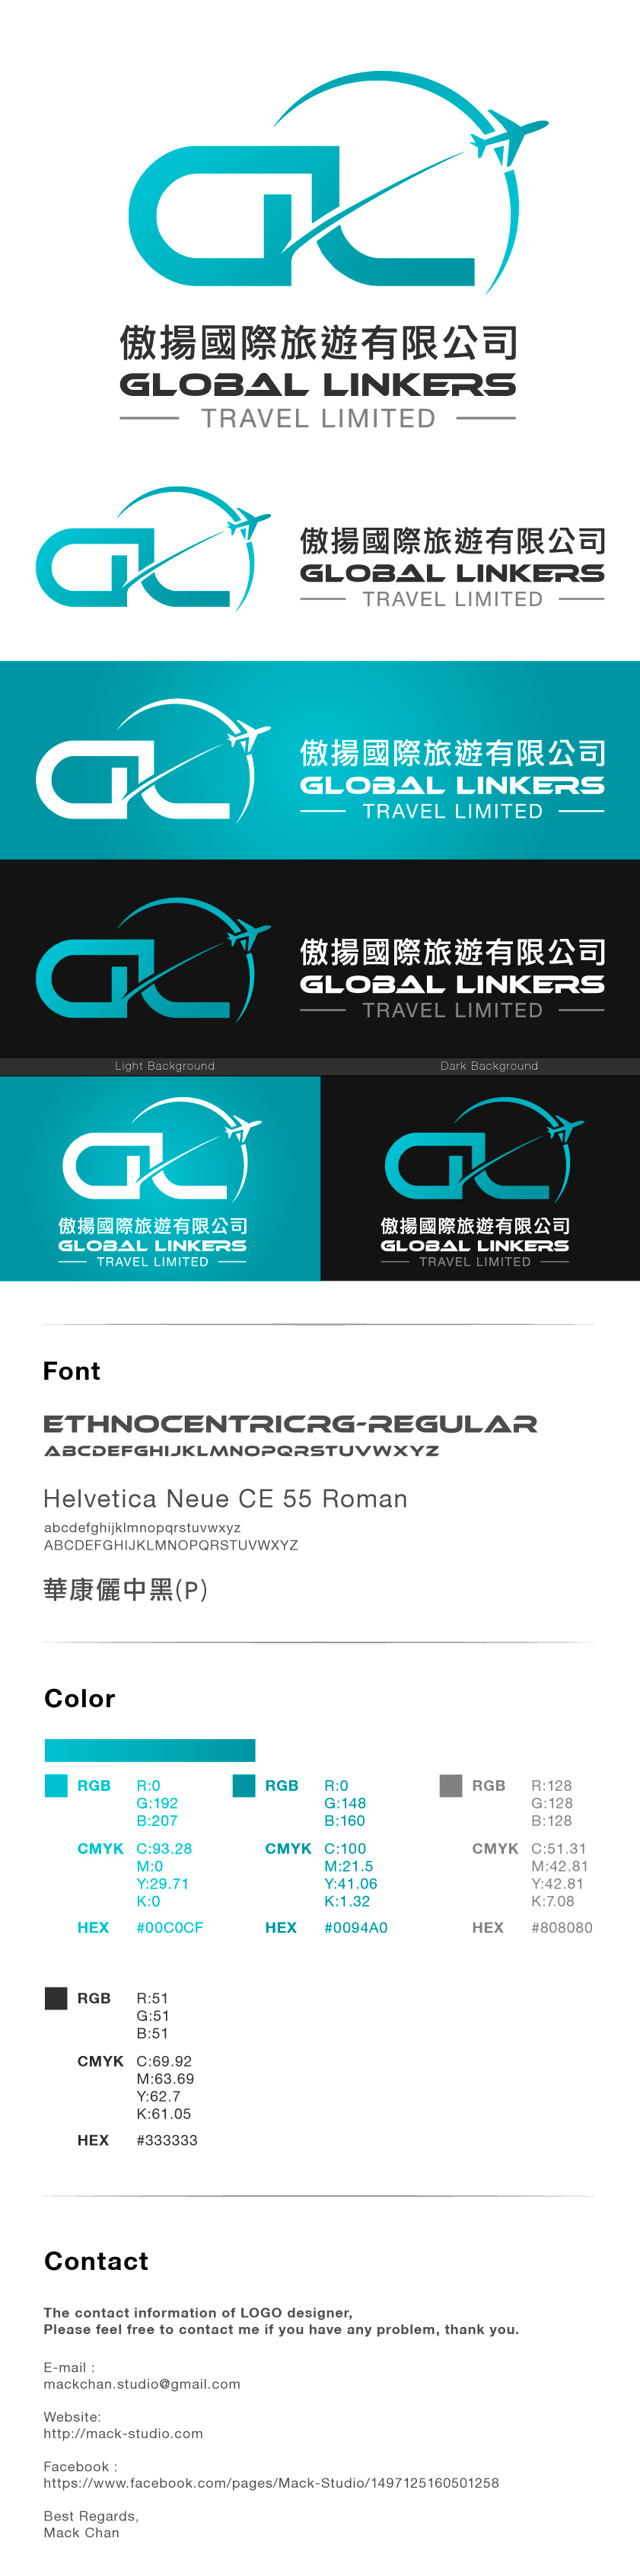 client name global linkers travel limited travel agent